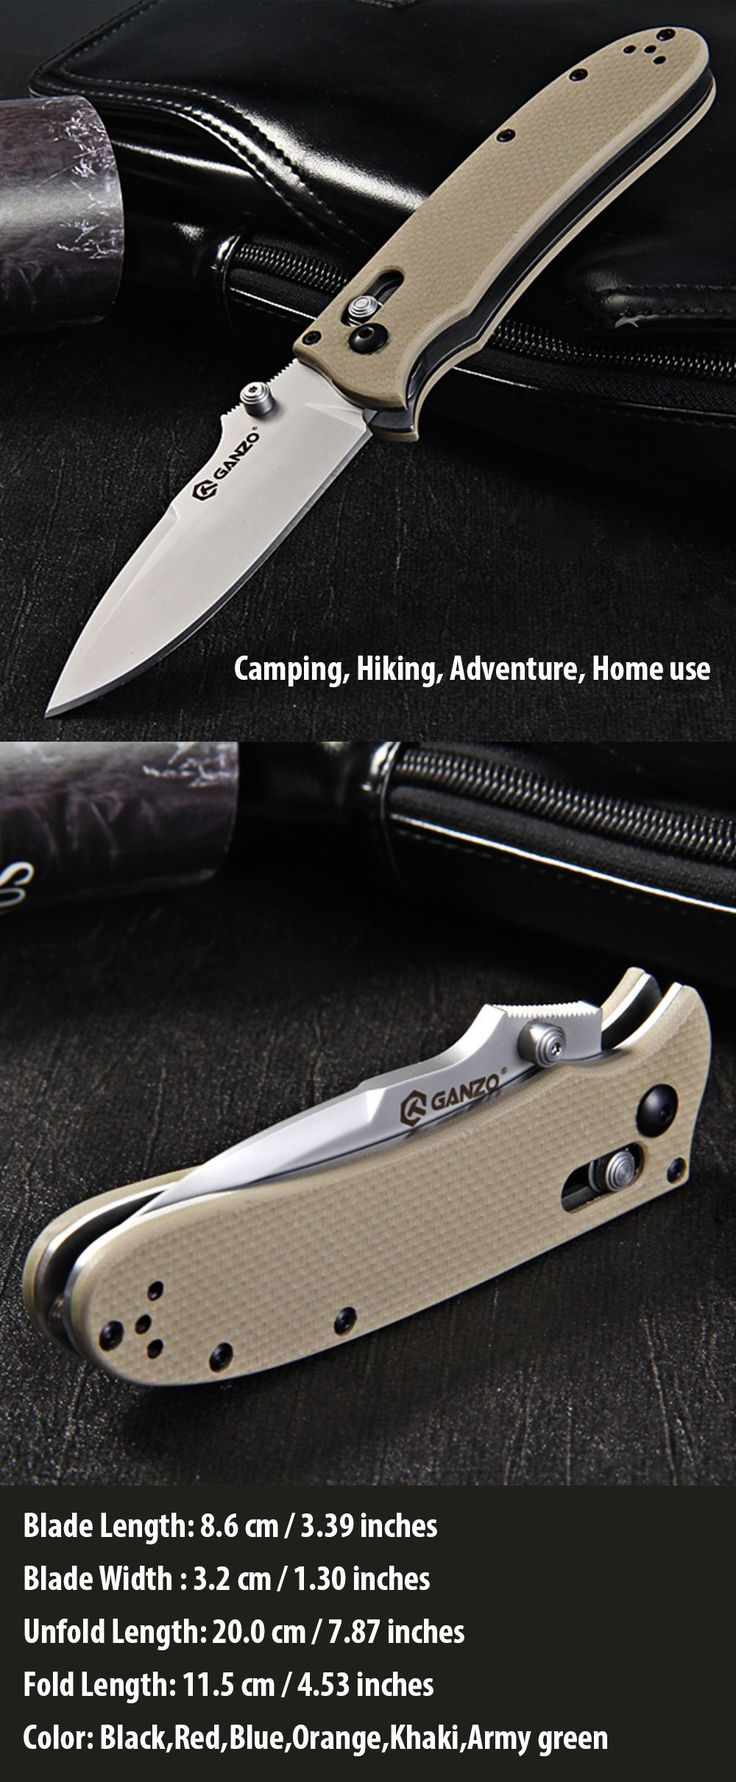 Ganzo G704 - Y Tactical Folding Knife for Home / Outdoor Camping / Hiking / Adventure Activities - khaki * ganzo knives, knife, knife hiking, knife travel